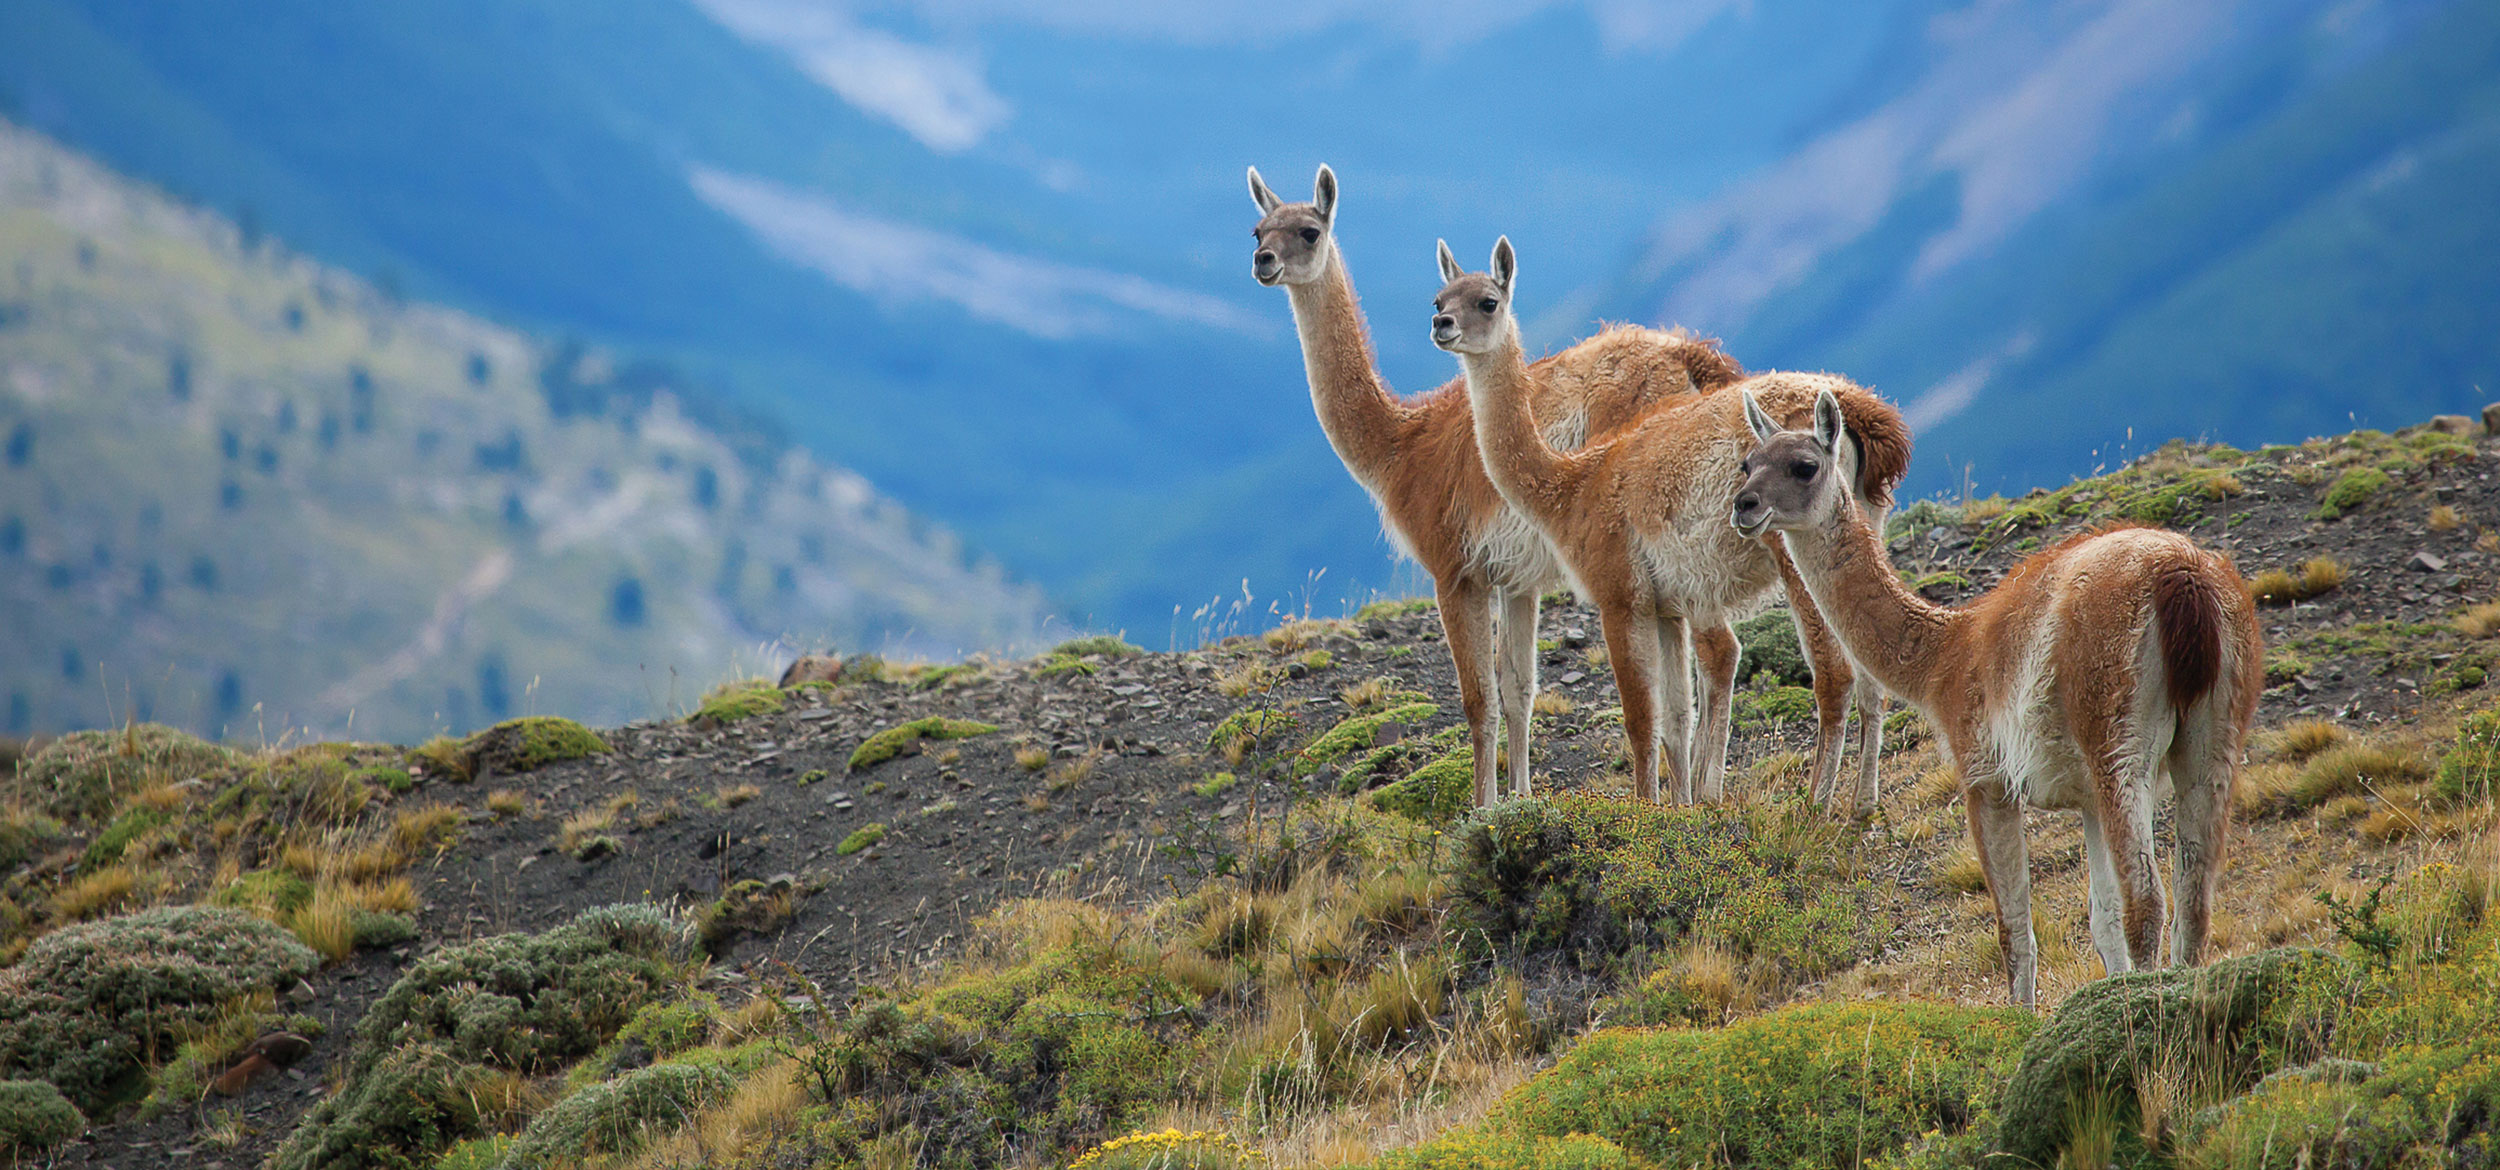 Three guanacos in Torres del Paine National Park in Chile.